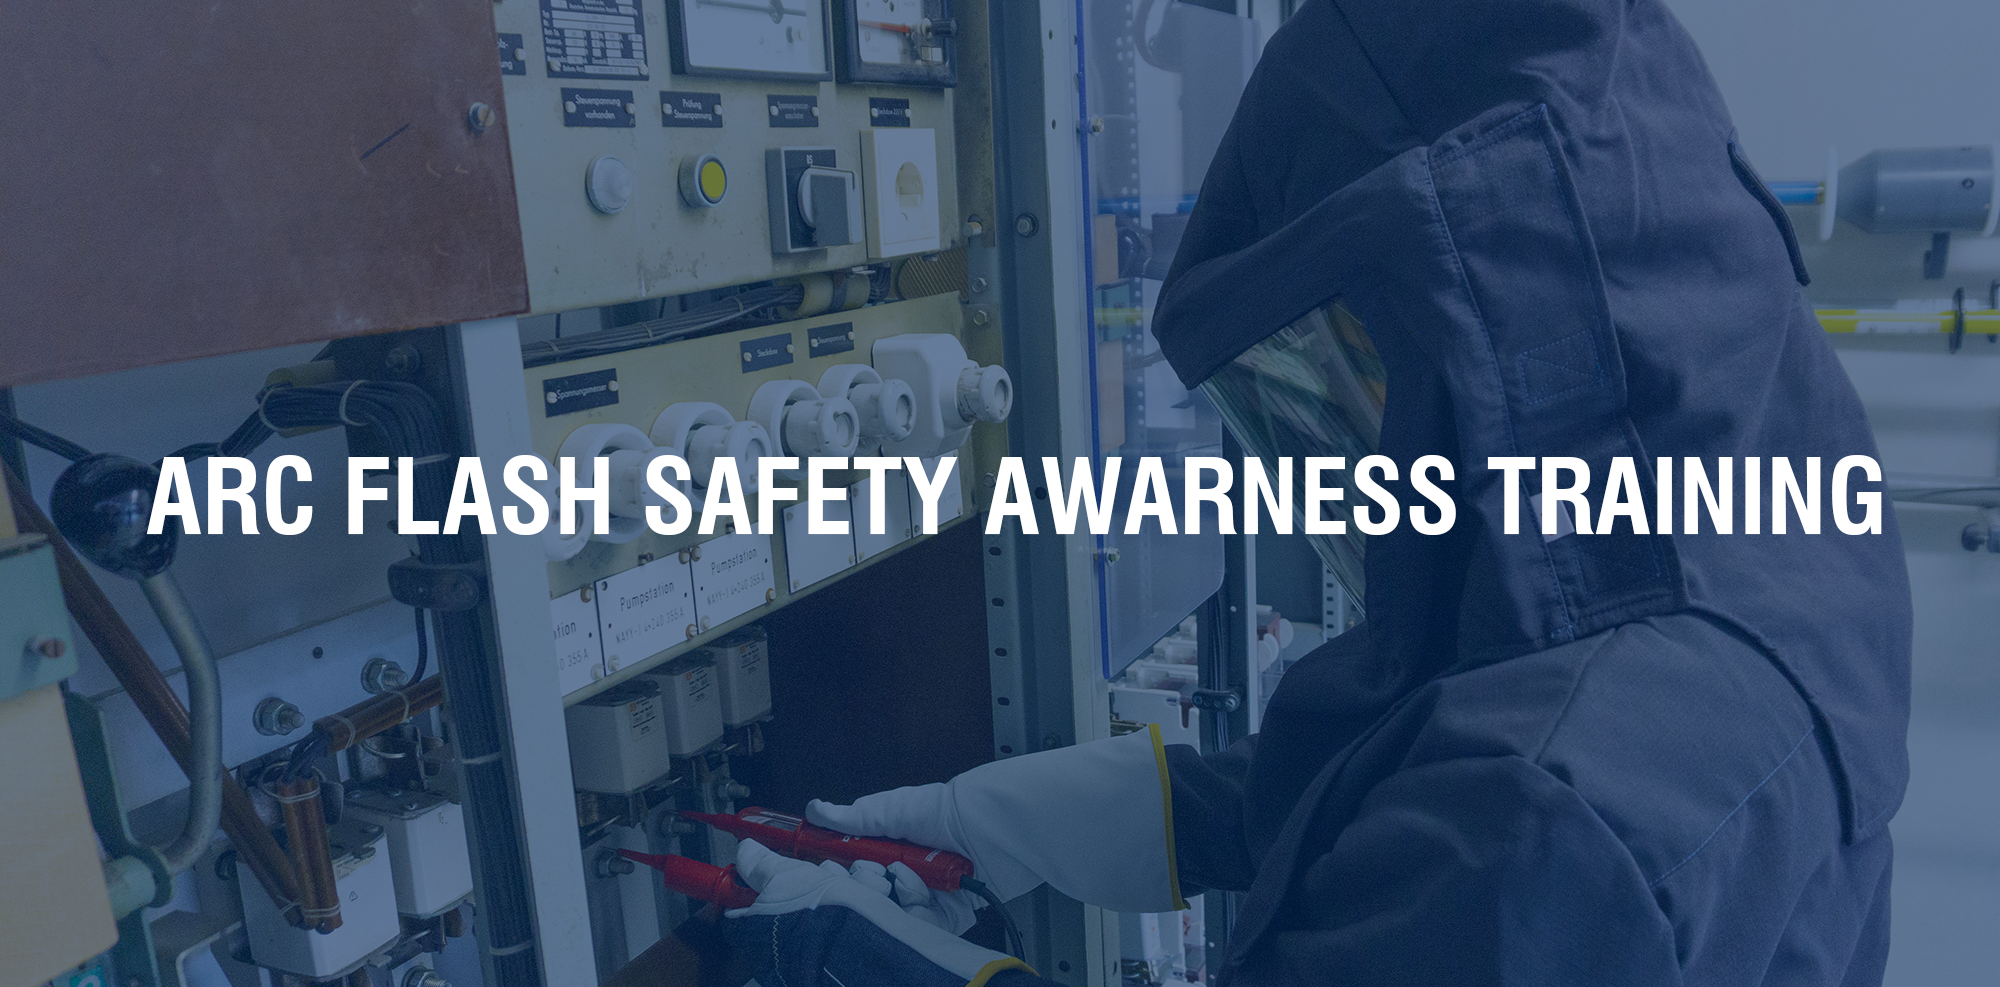 Arc Flash Safety Awareness Training